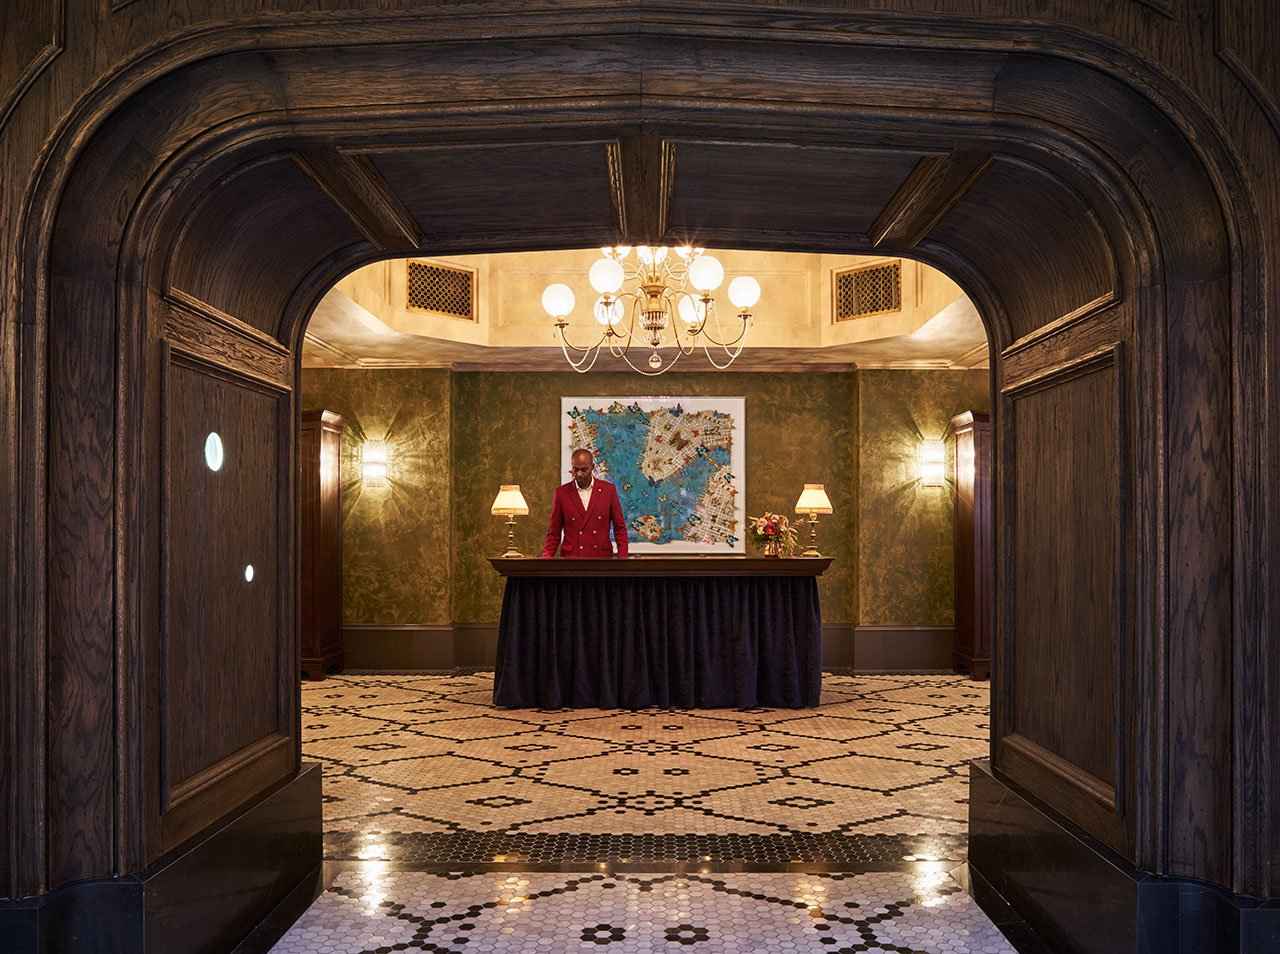 Manhattan Hotel: The_beekman_a_thompson_hotel_new_york_yatzer, Mandy stool by KOKET, luxury furniture manhattan hotel Historic NYC Building Revival Gives Rise to a Luxury Manhattan Hotel f5 the beekman a thompson hotel new york yatzer